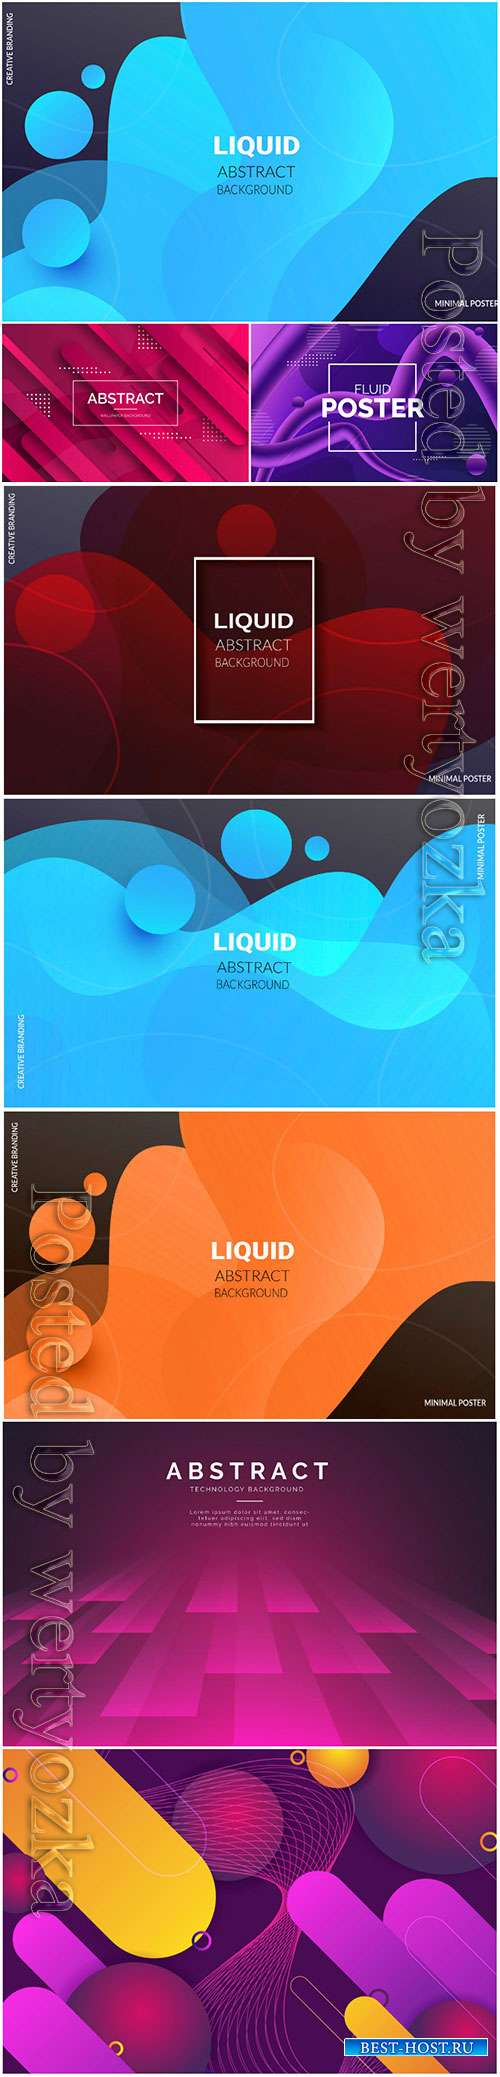 Liquid vector abstract background